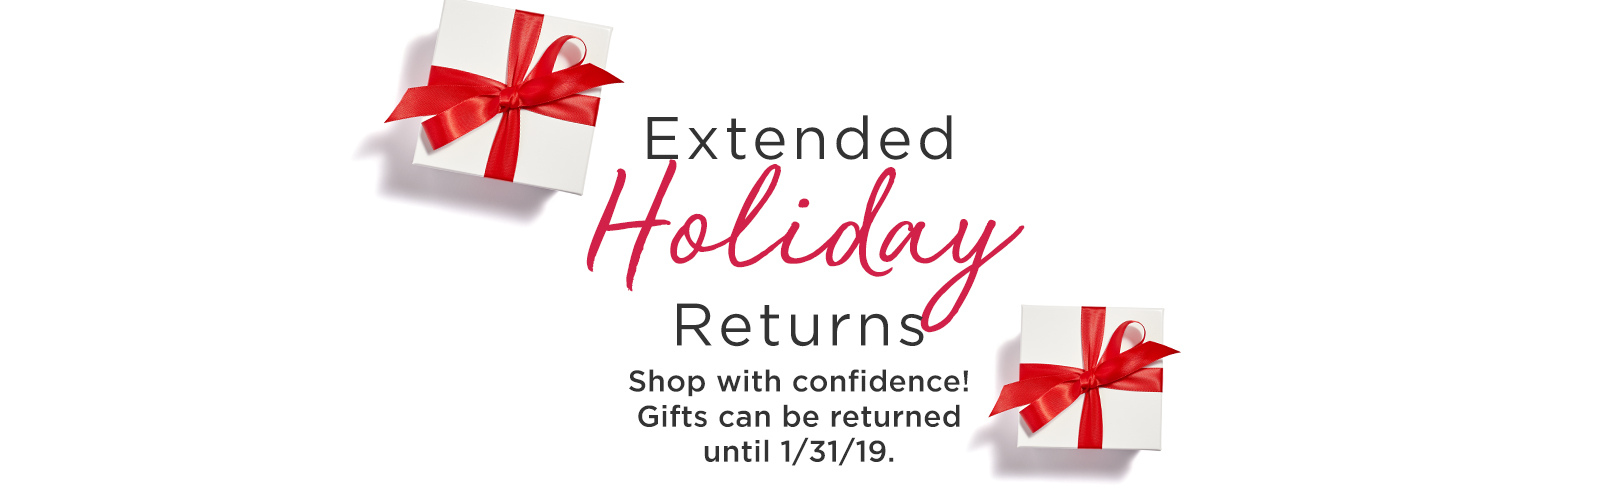 Extended Holiday Returns.  Shop with confidence! Gifts can be returned until 1/31/19.